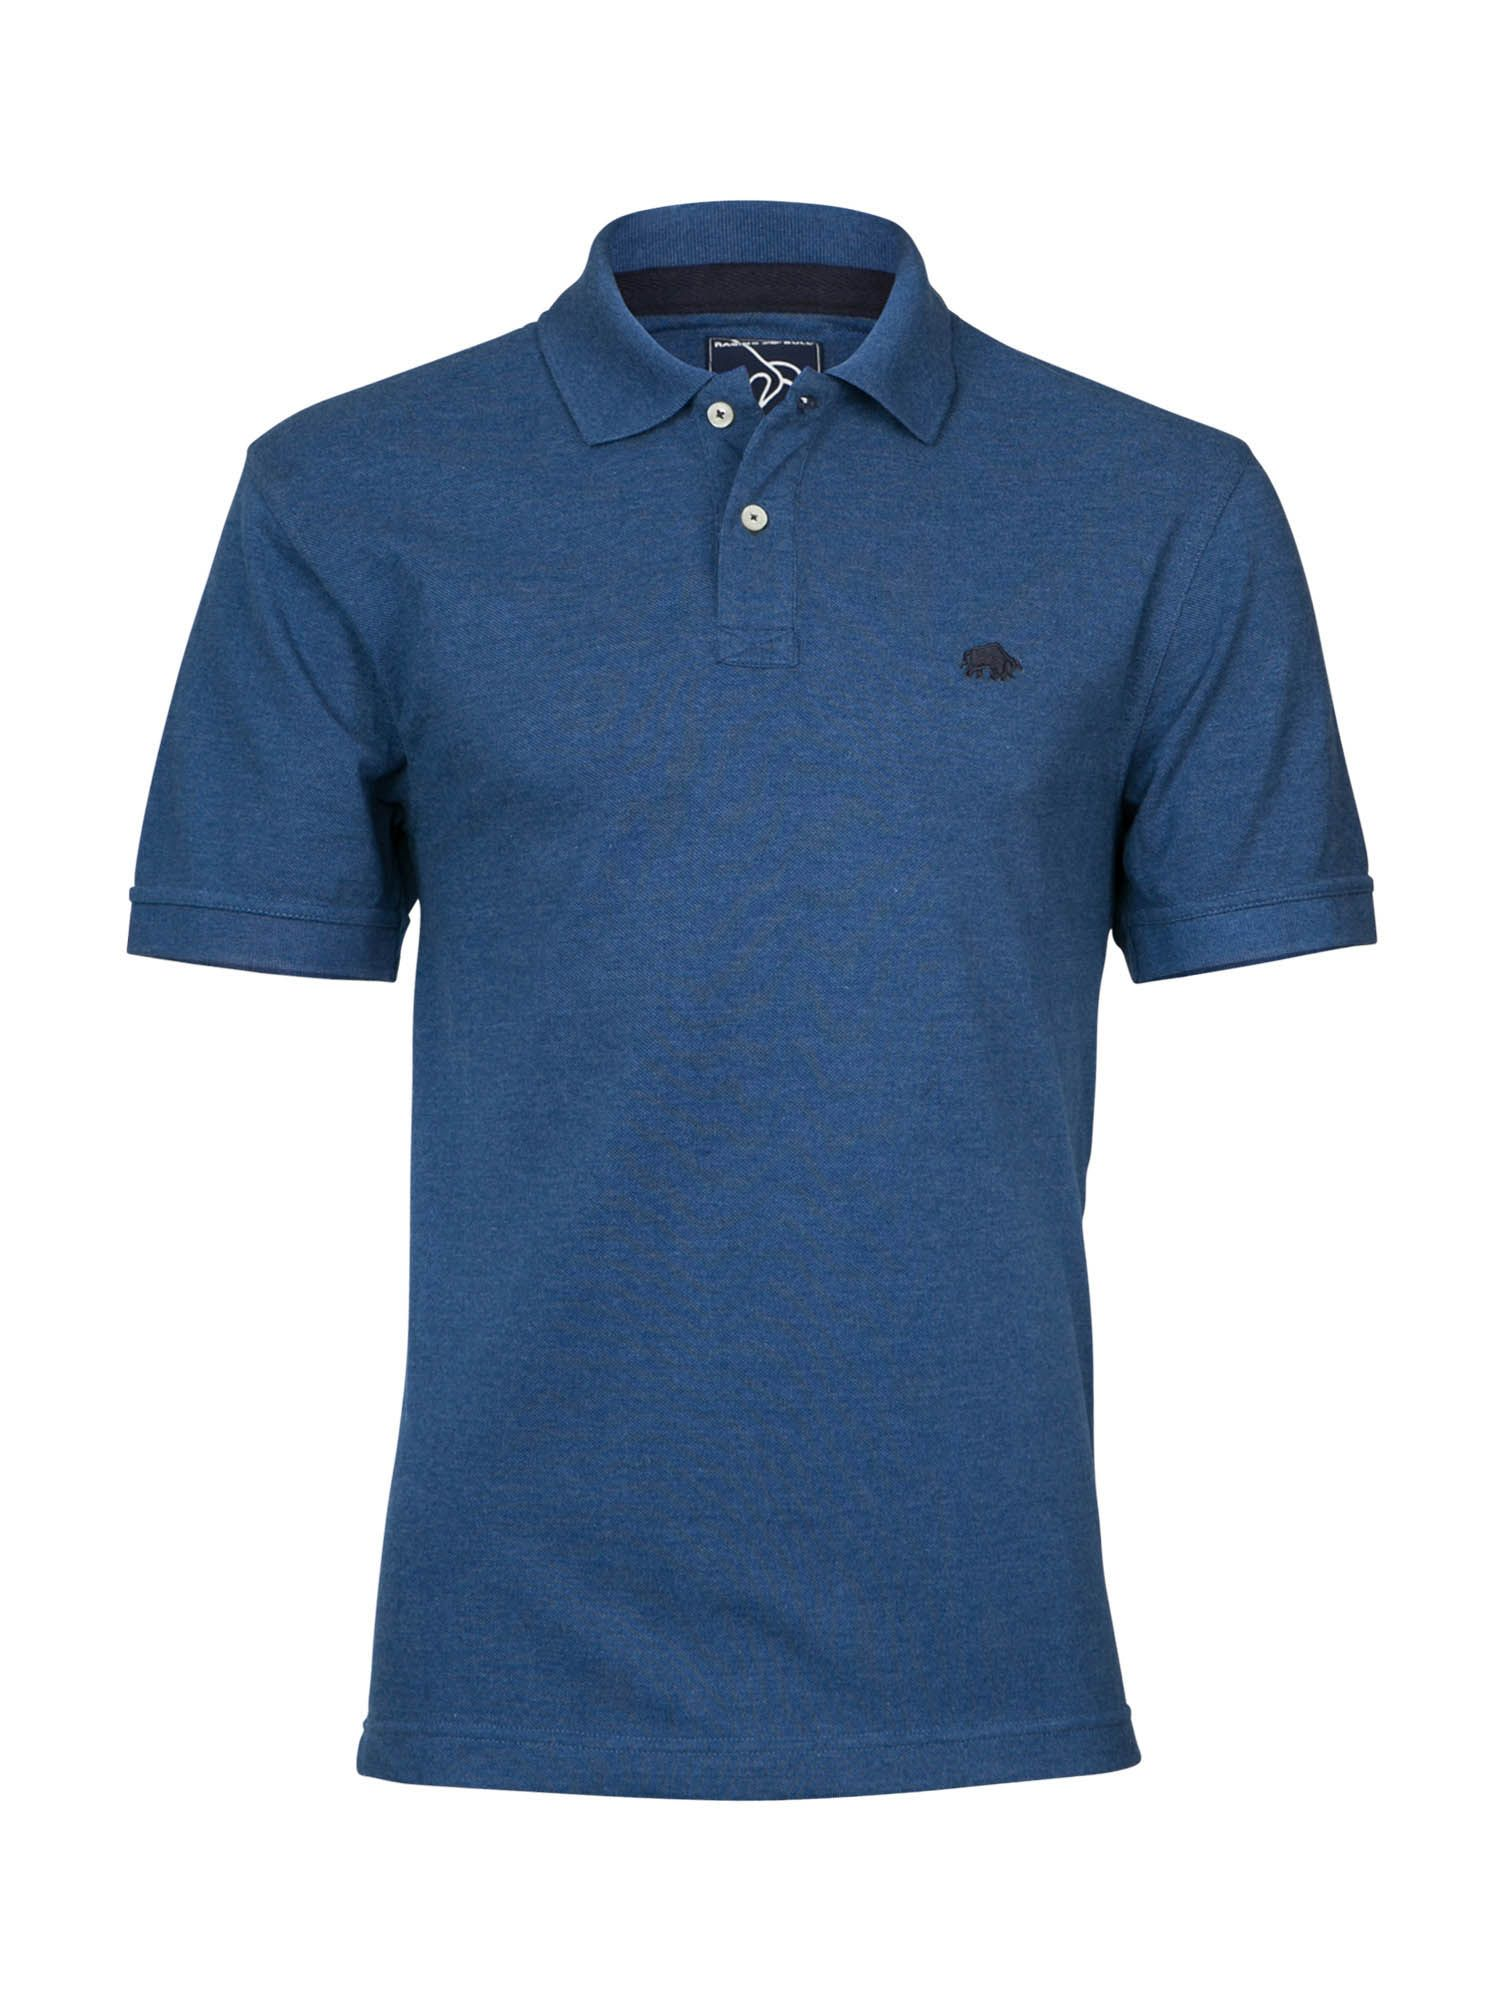 Men's Raging Bull Big & Tall New Signature Polo, Blue